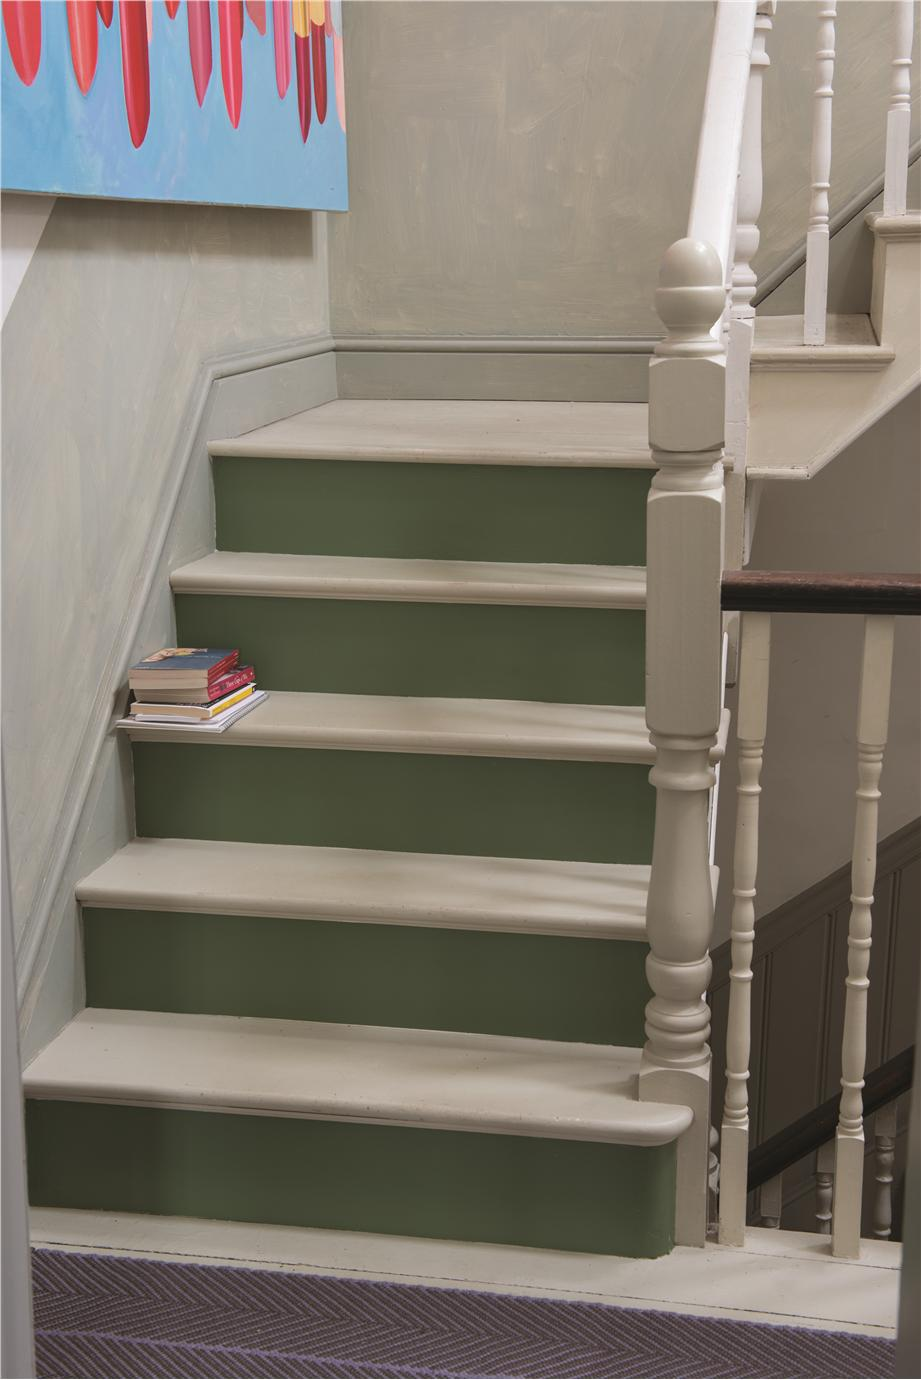 Farrow ball inspiration - Painted stairs ideas pictures ...